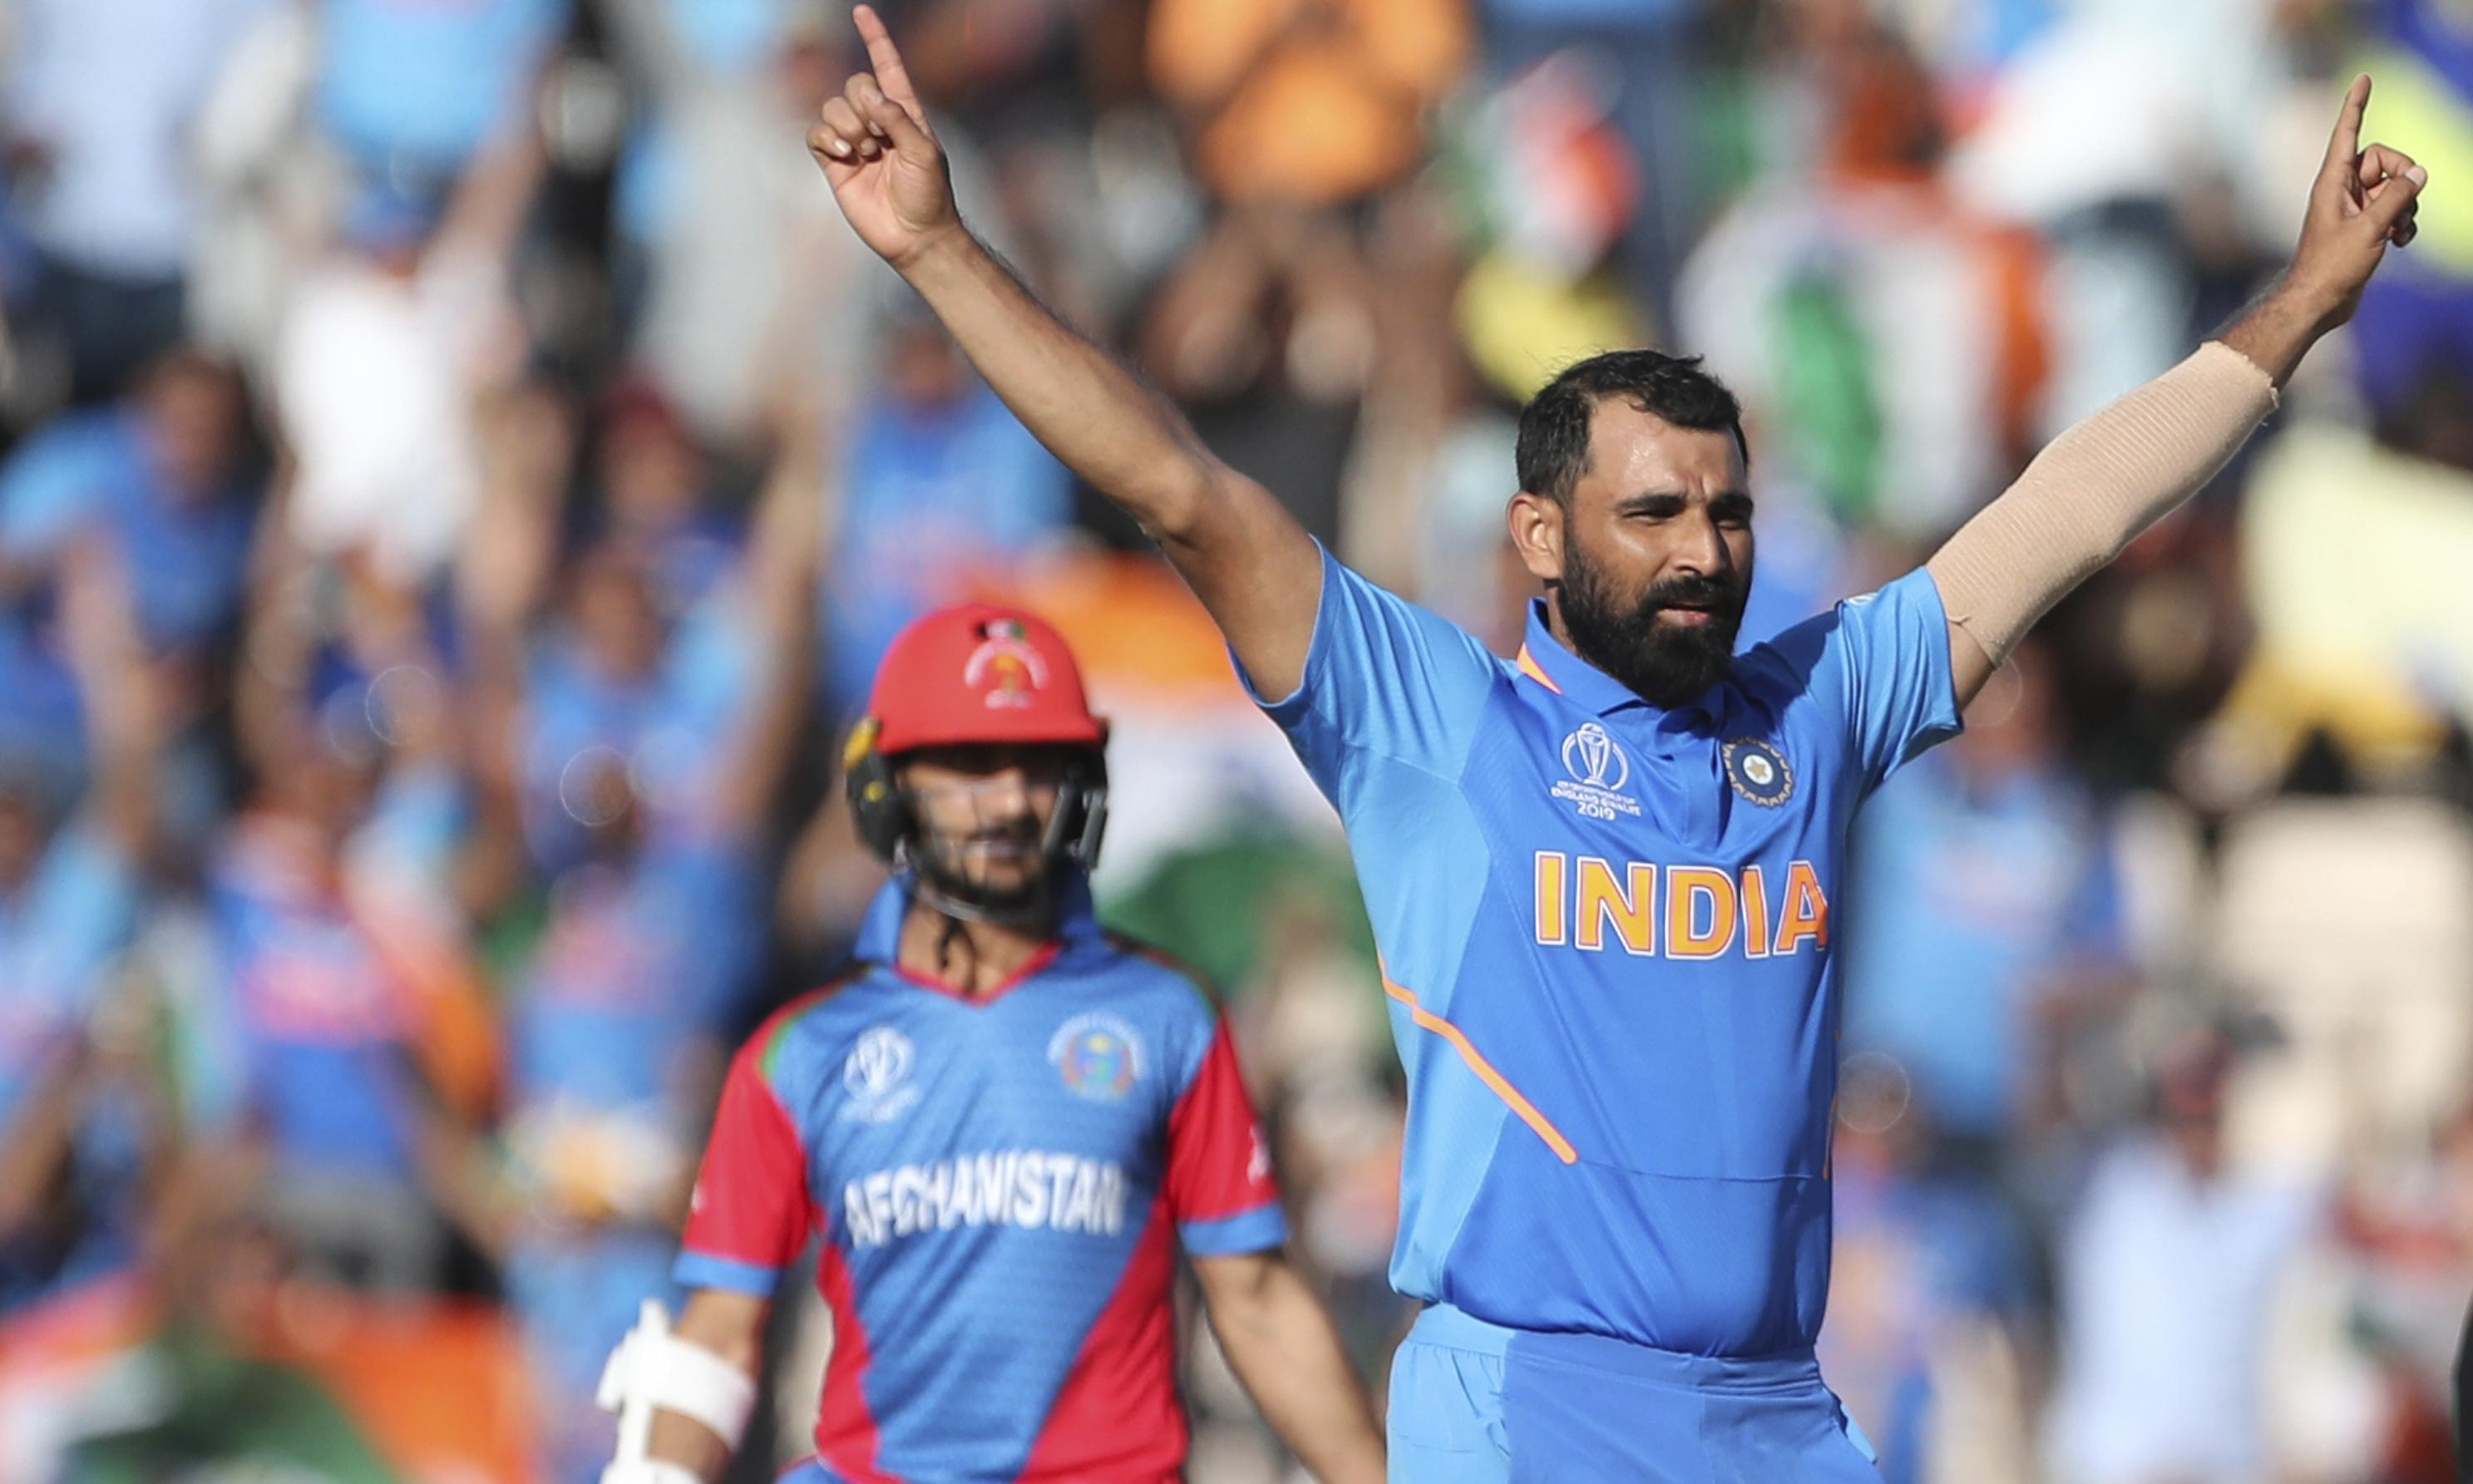 Cricket World Cup: Shami hat-trick seals India win as Afghanistan fall just short